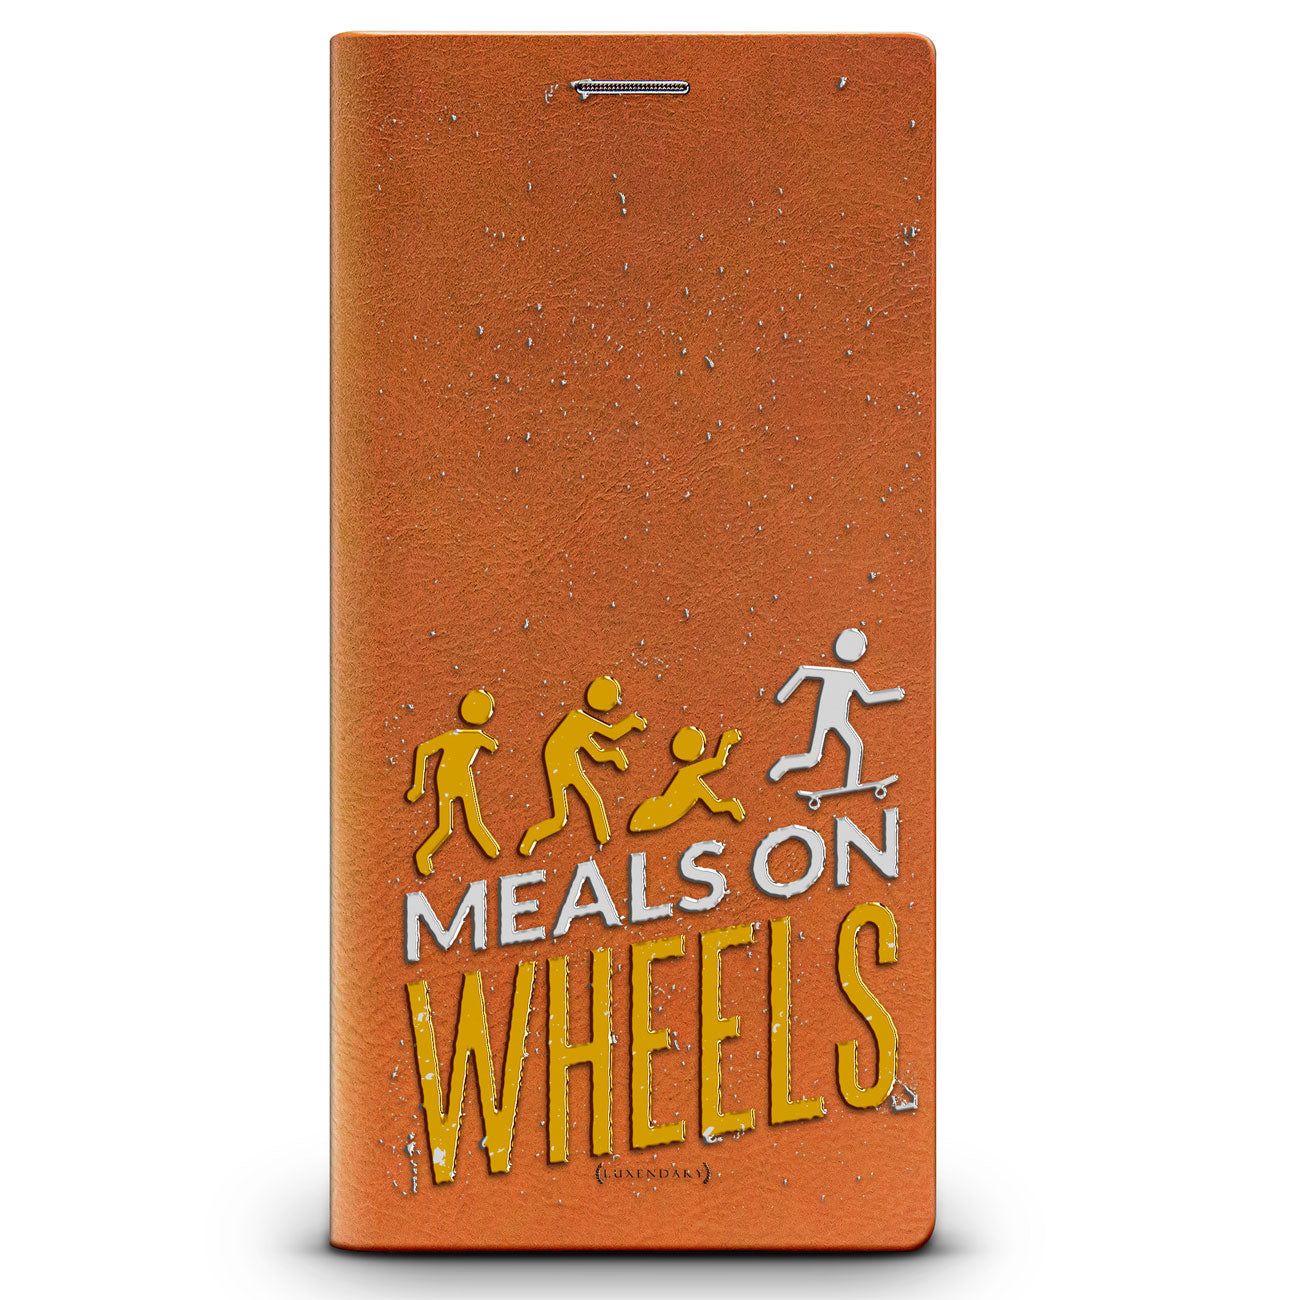 Meals on Wheels Zombie Design